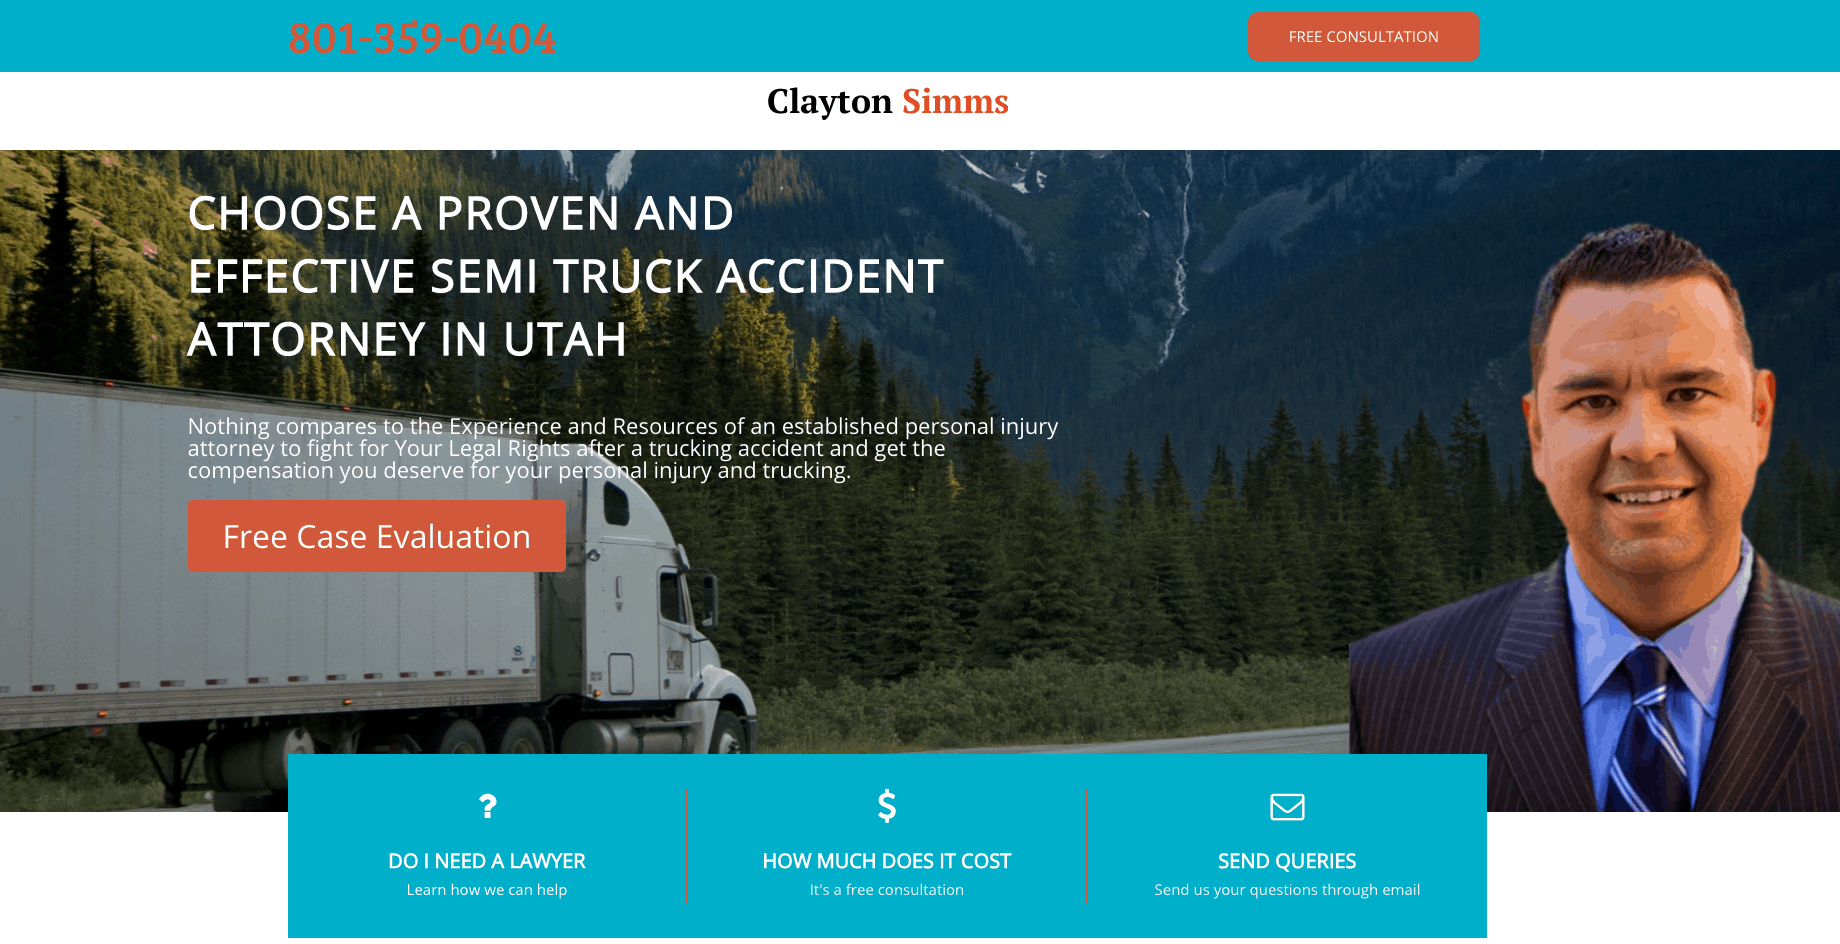 469 Custom Website Design and Clayton Simms